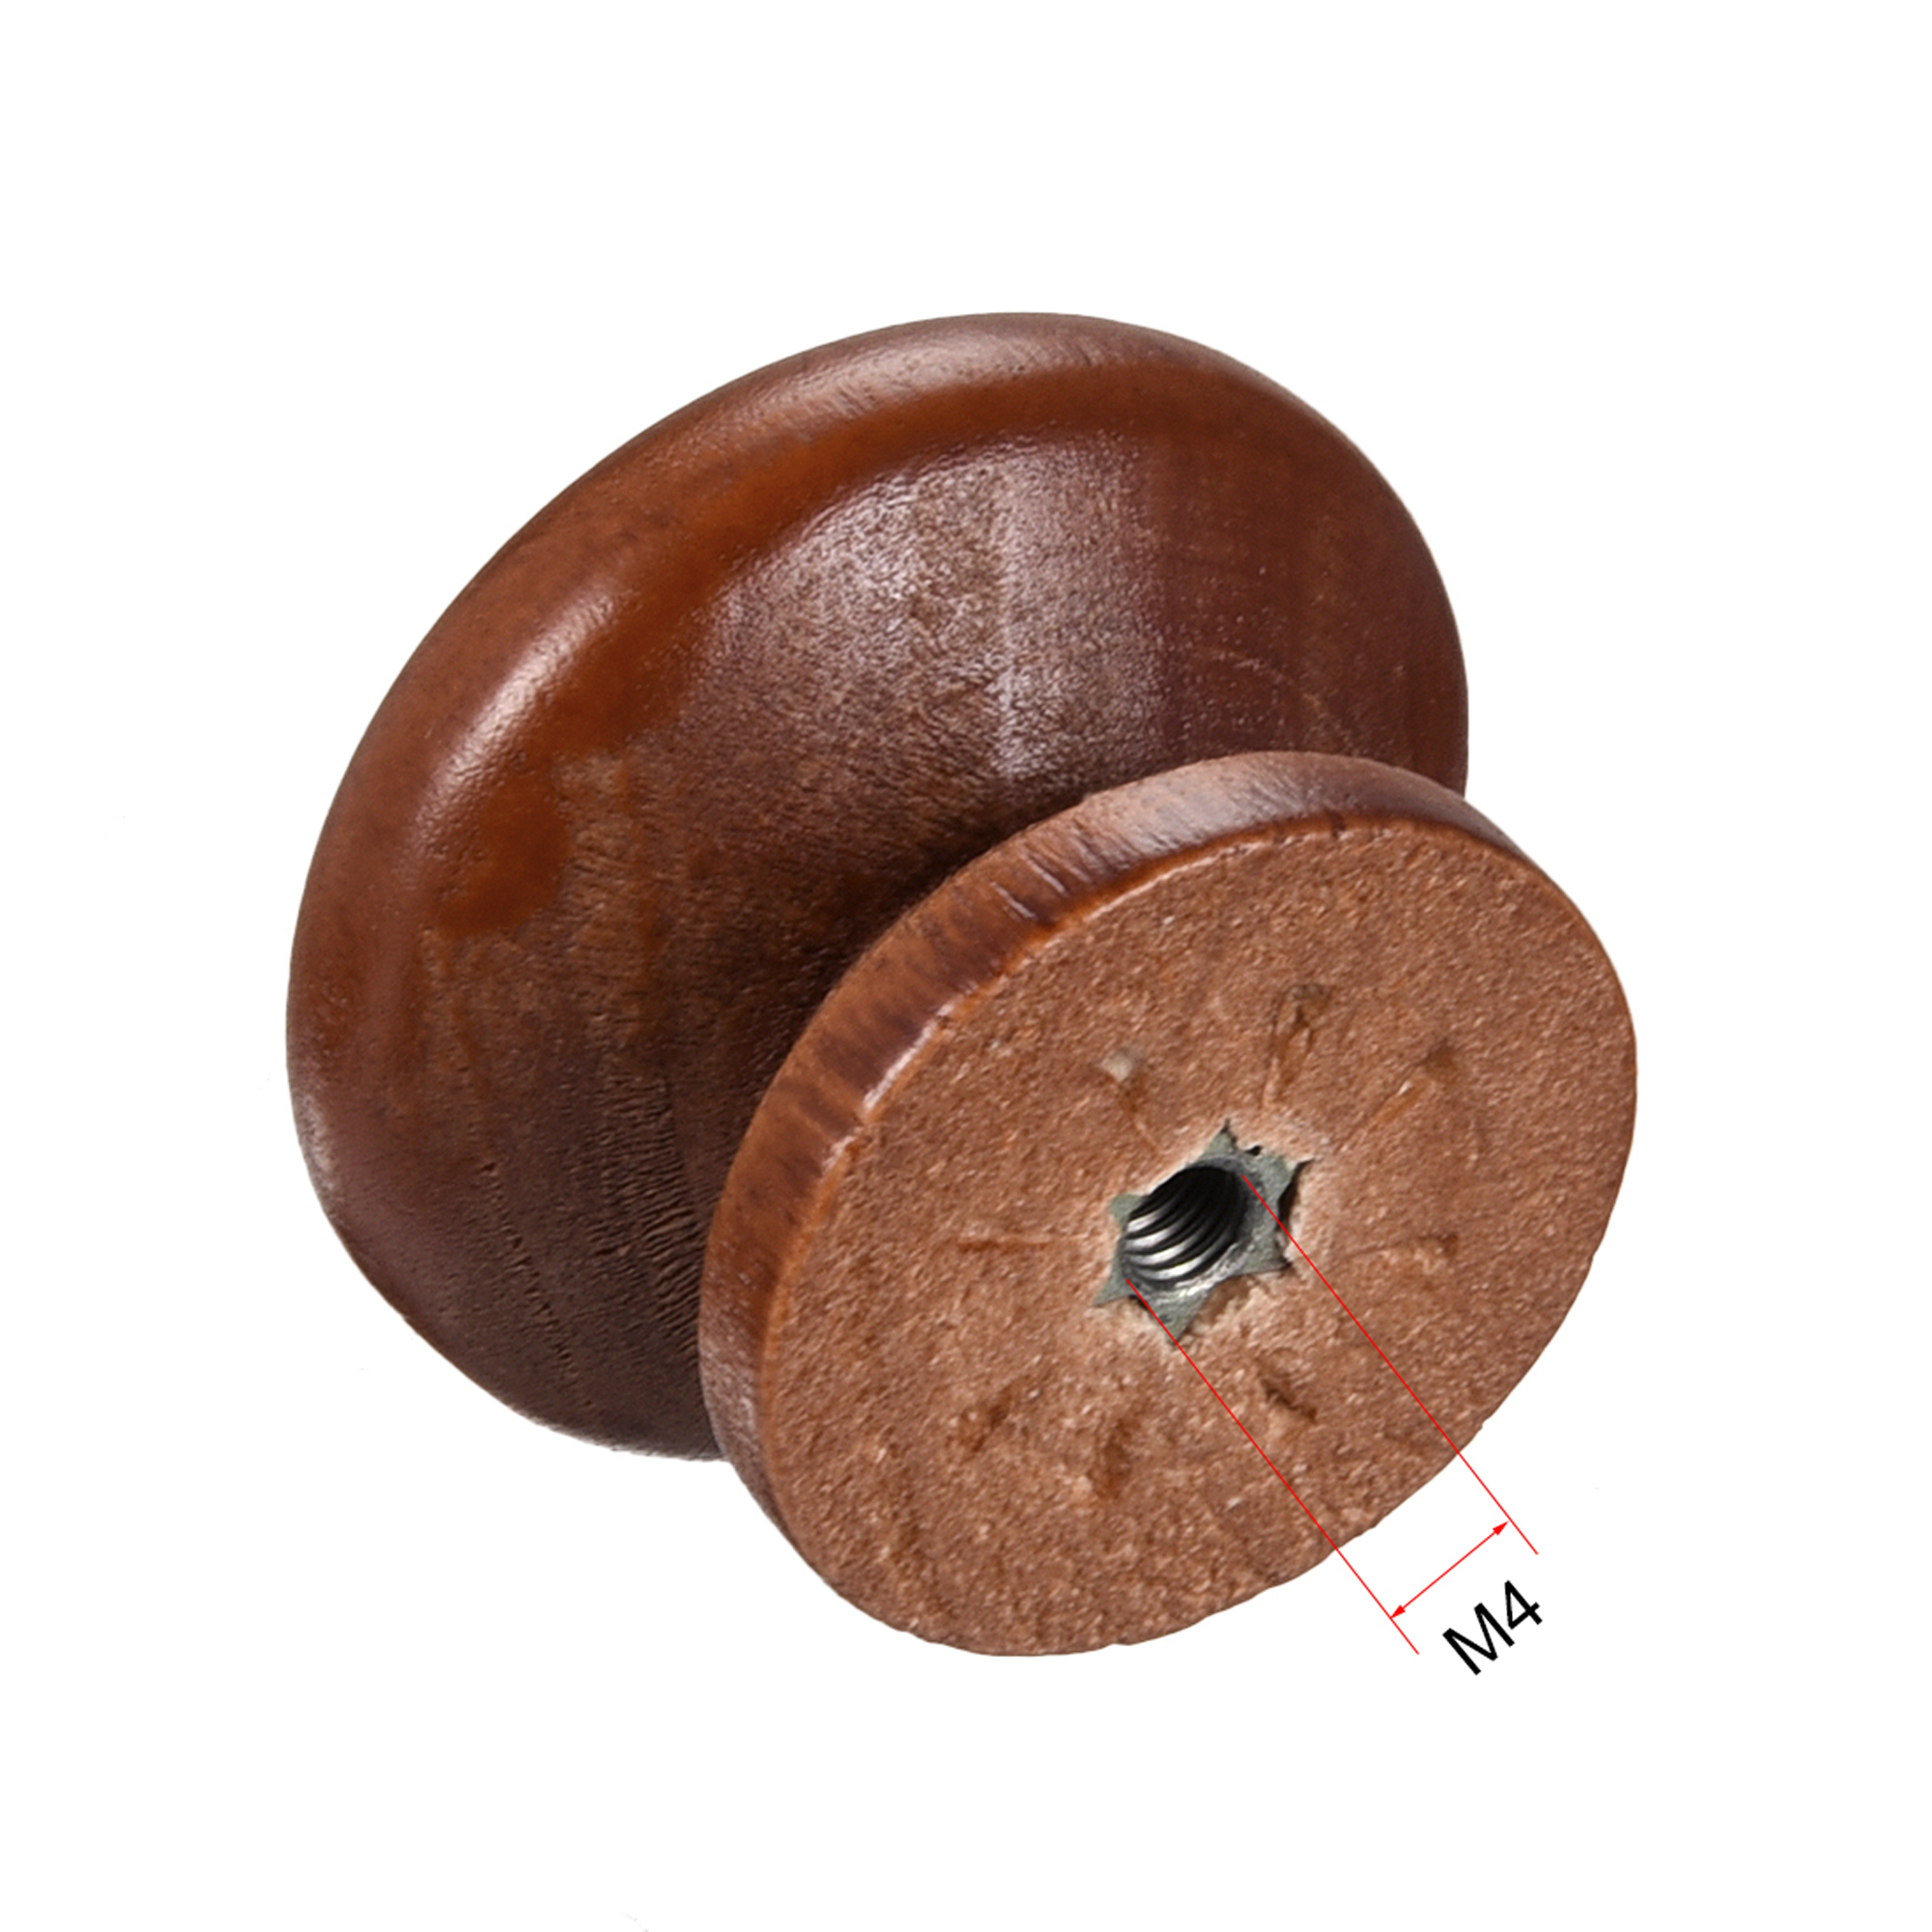 Round Pull Knob Handle 35mm Dia Cabinet Furniture Bedroom Kitchen Drawer 10pcs - image 1 de 4